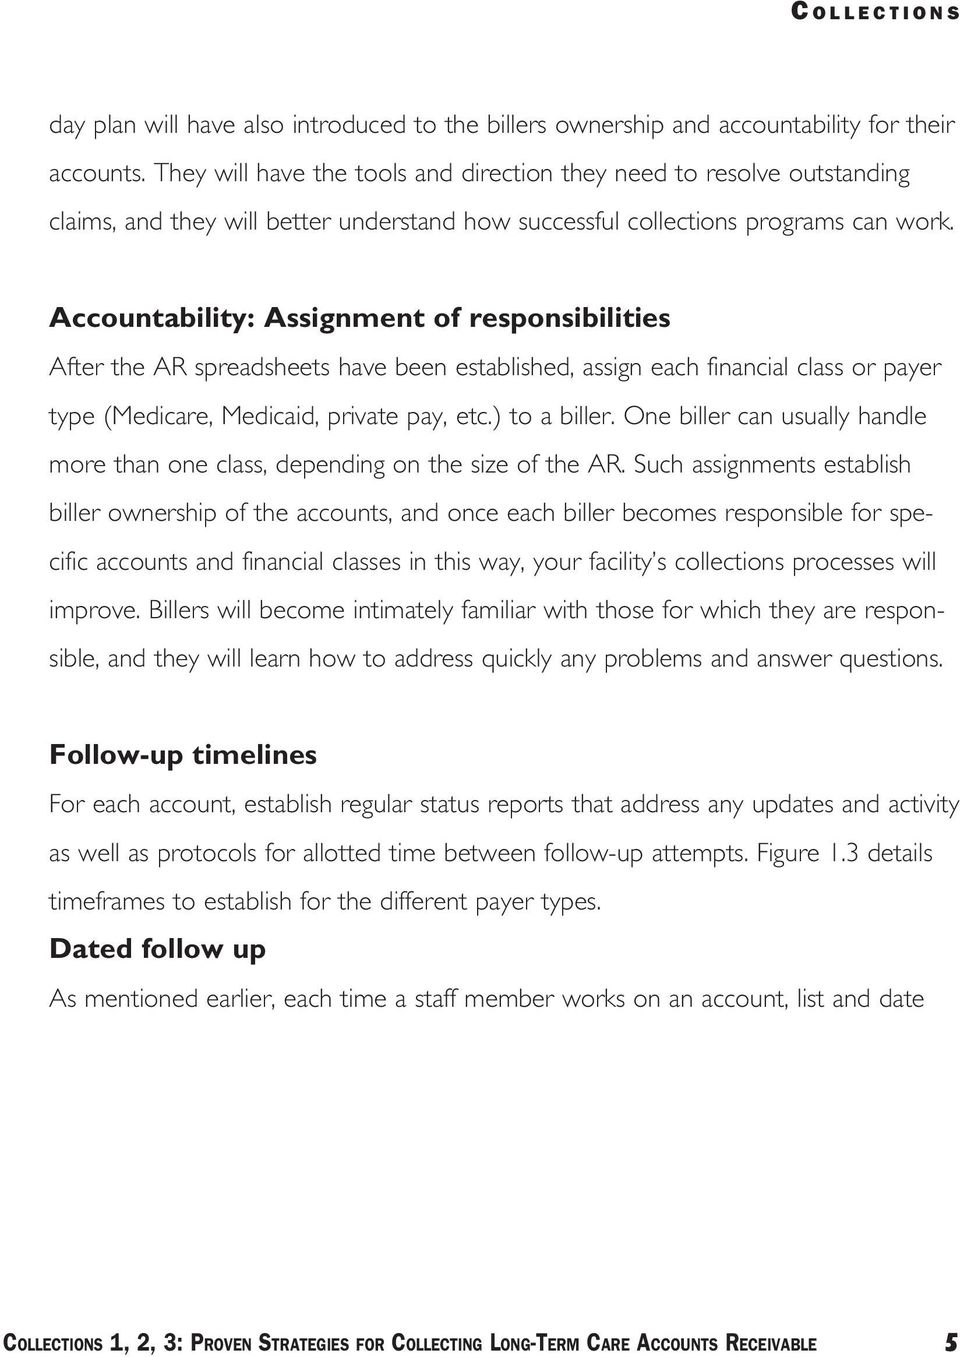 Accountability: Assignment of responsibilities After the AR spreadsheets have been established, assign each financial class or payer type (Medicare, Medicaid, private pay, etc.) to a biller.